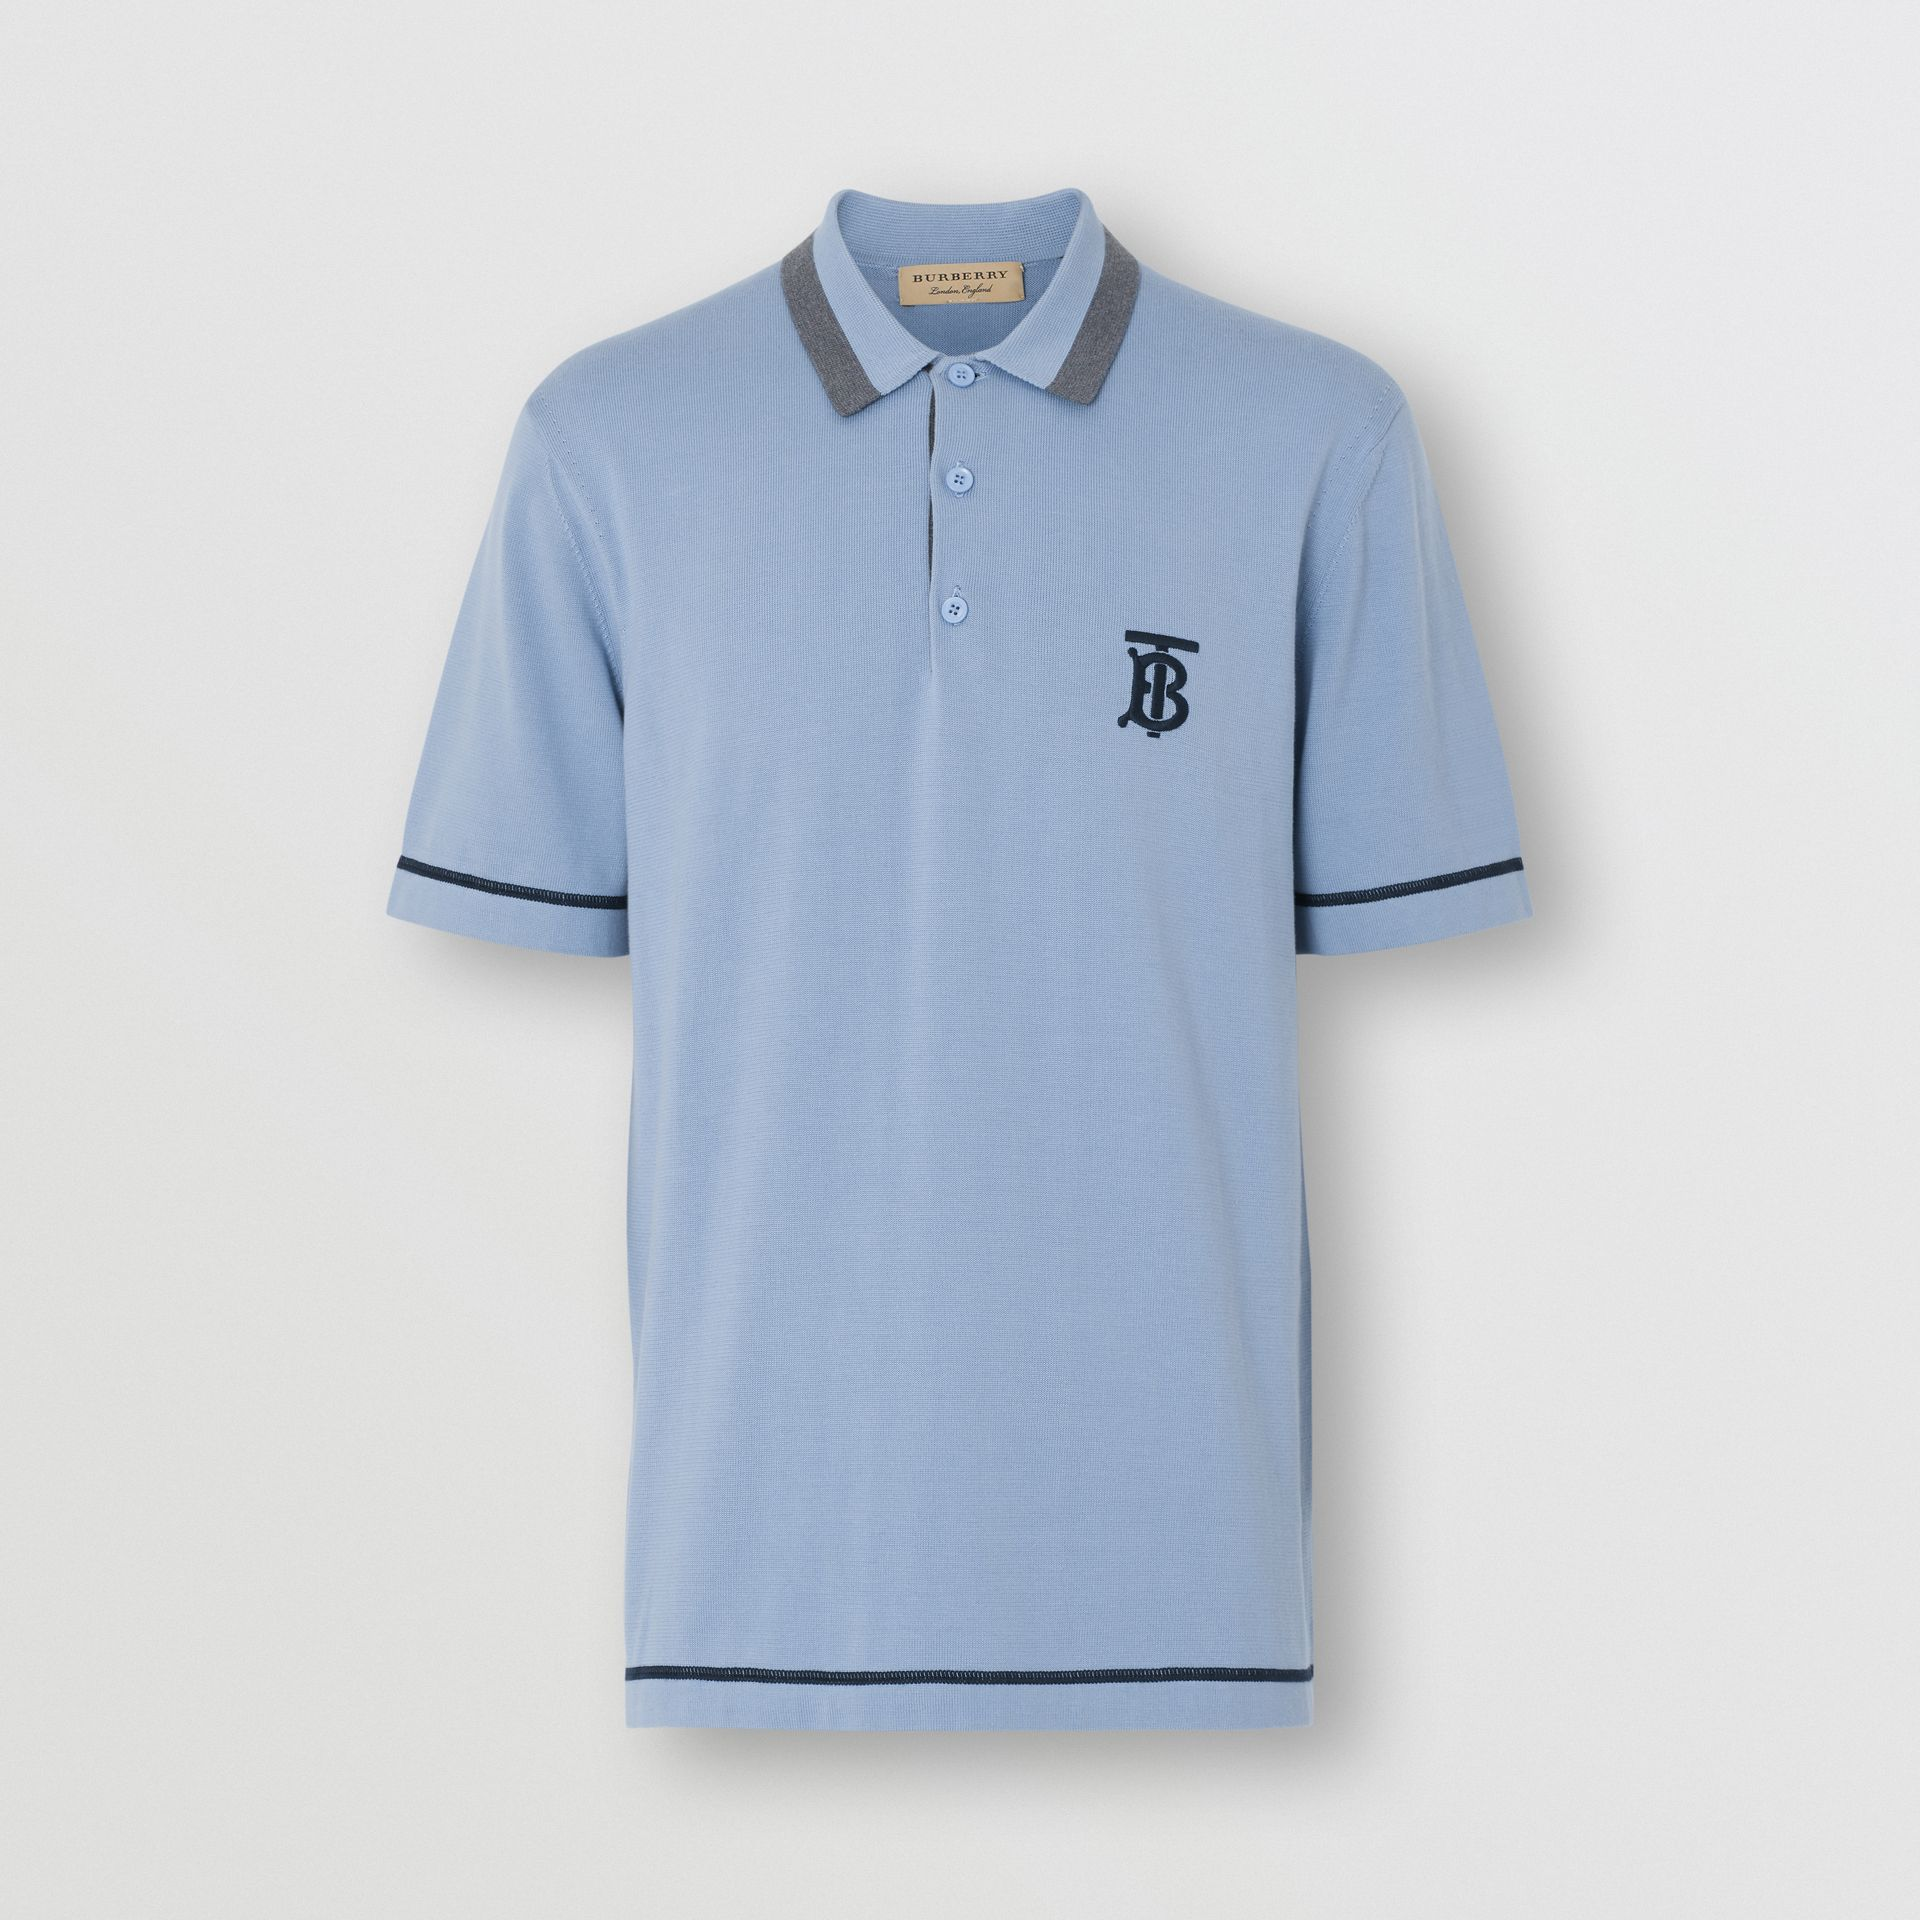 Monogram Motif Tipped Cotton Polo Shirt in Baby Blue - Men | Burberry Hong Kong - gallery image 3